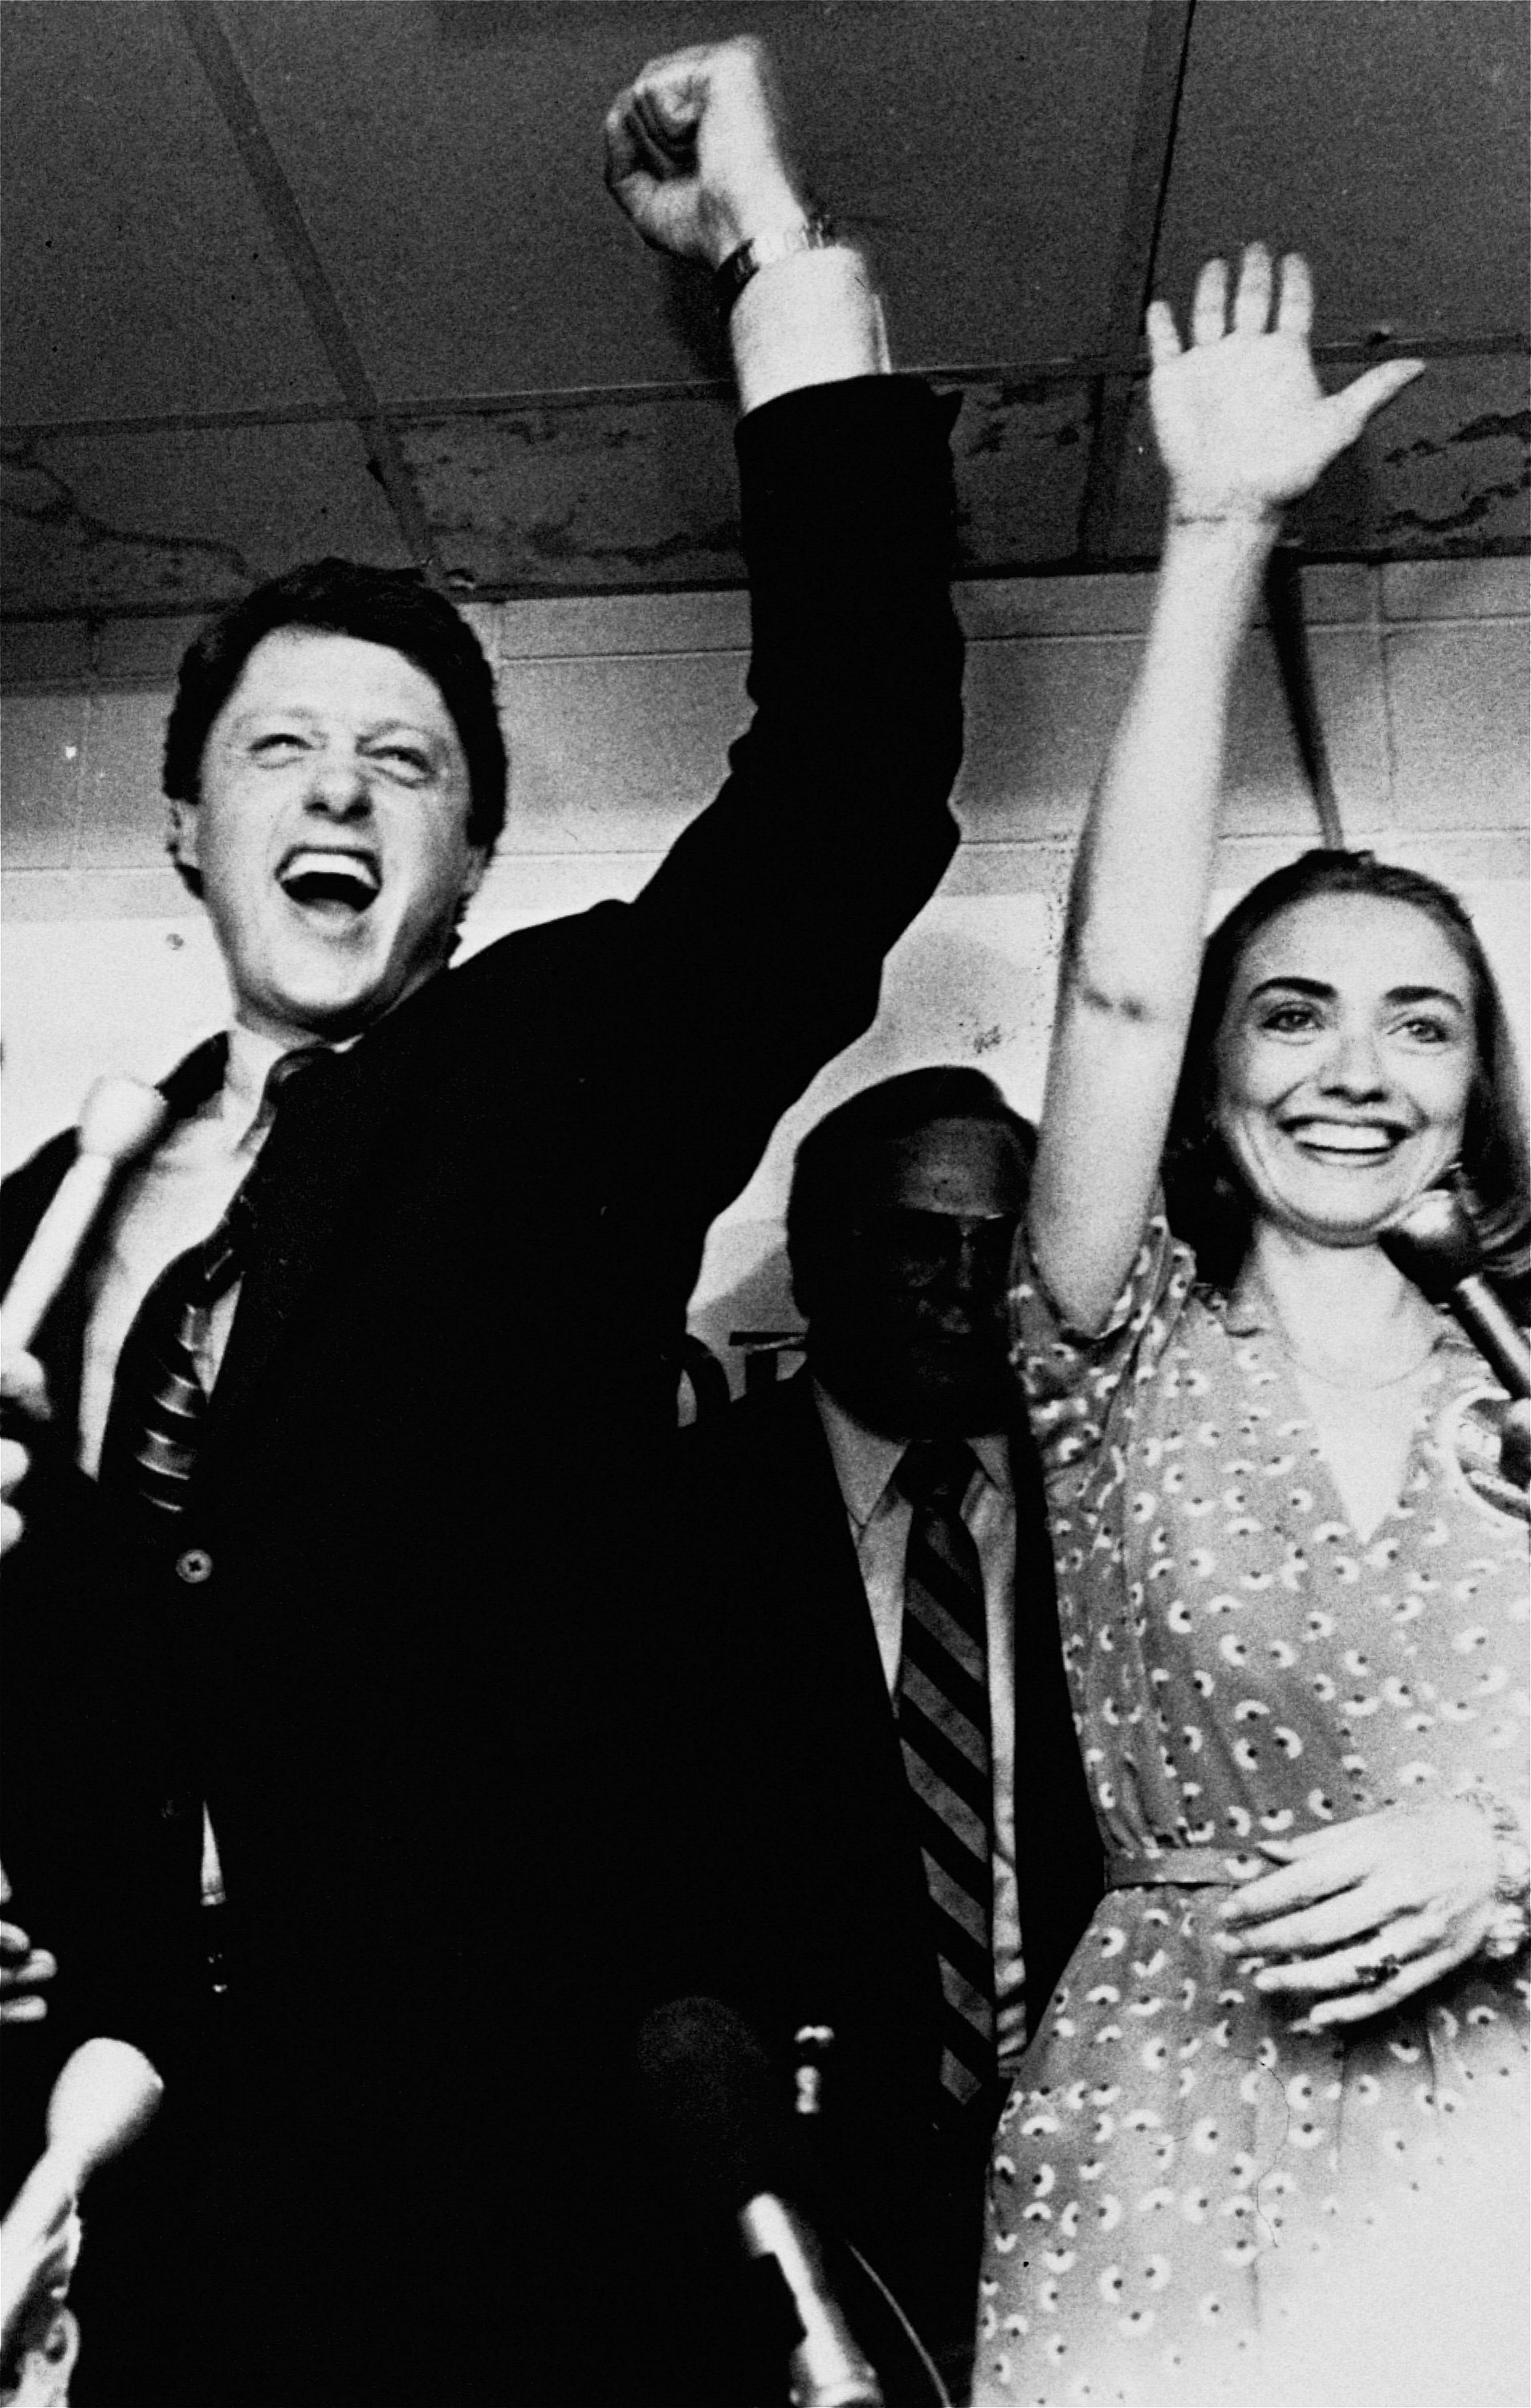 Bill and Hillary Clinton celebrate victory in the Democratic runoff in Little Rock, Ark. June 8, 1982.